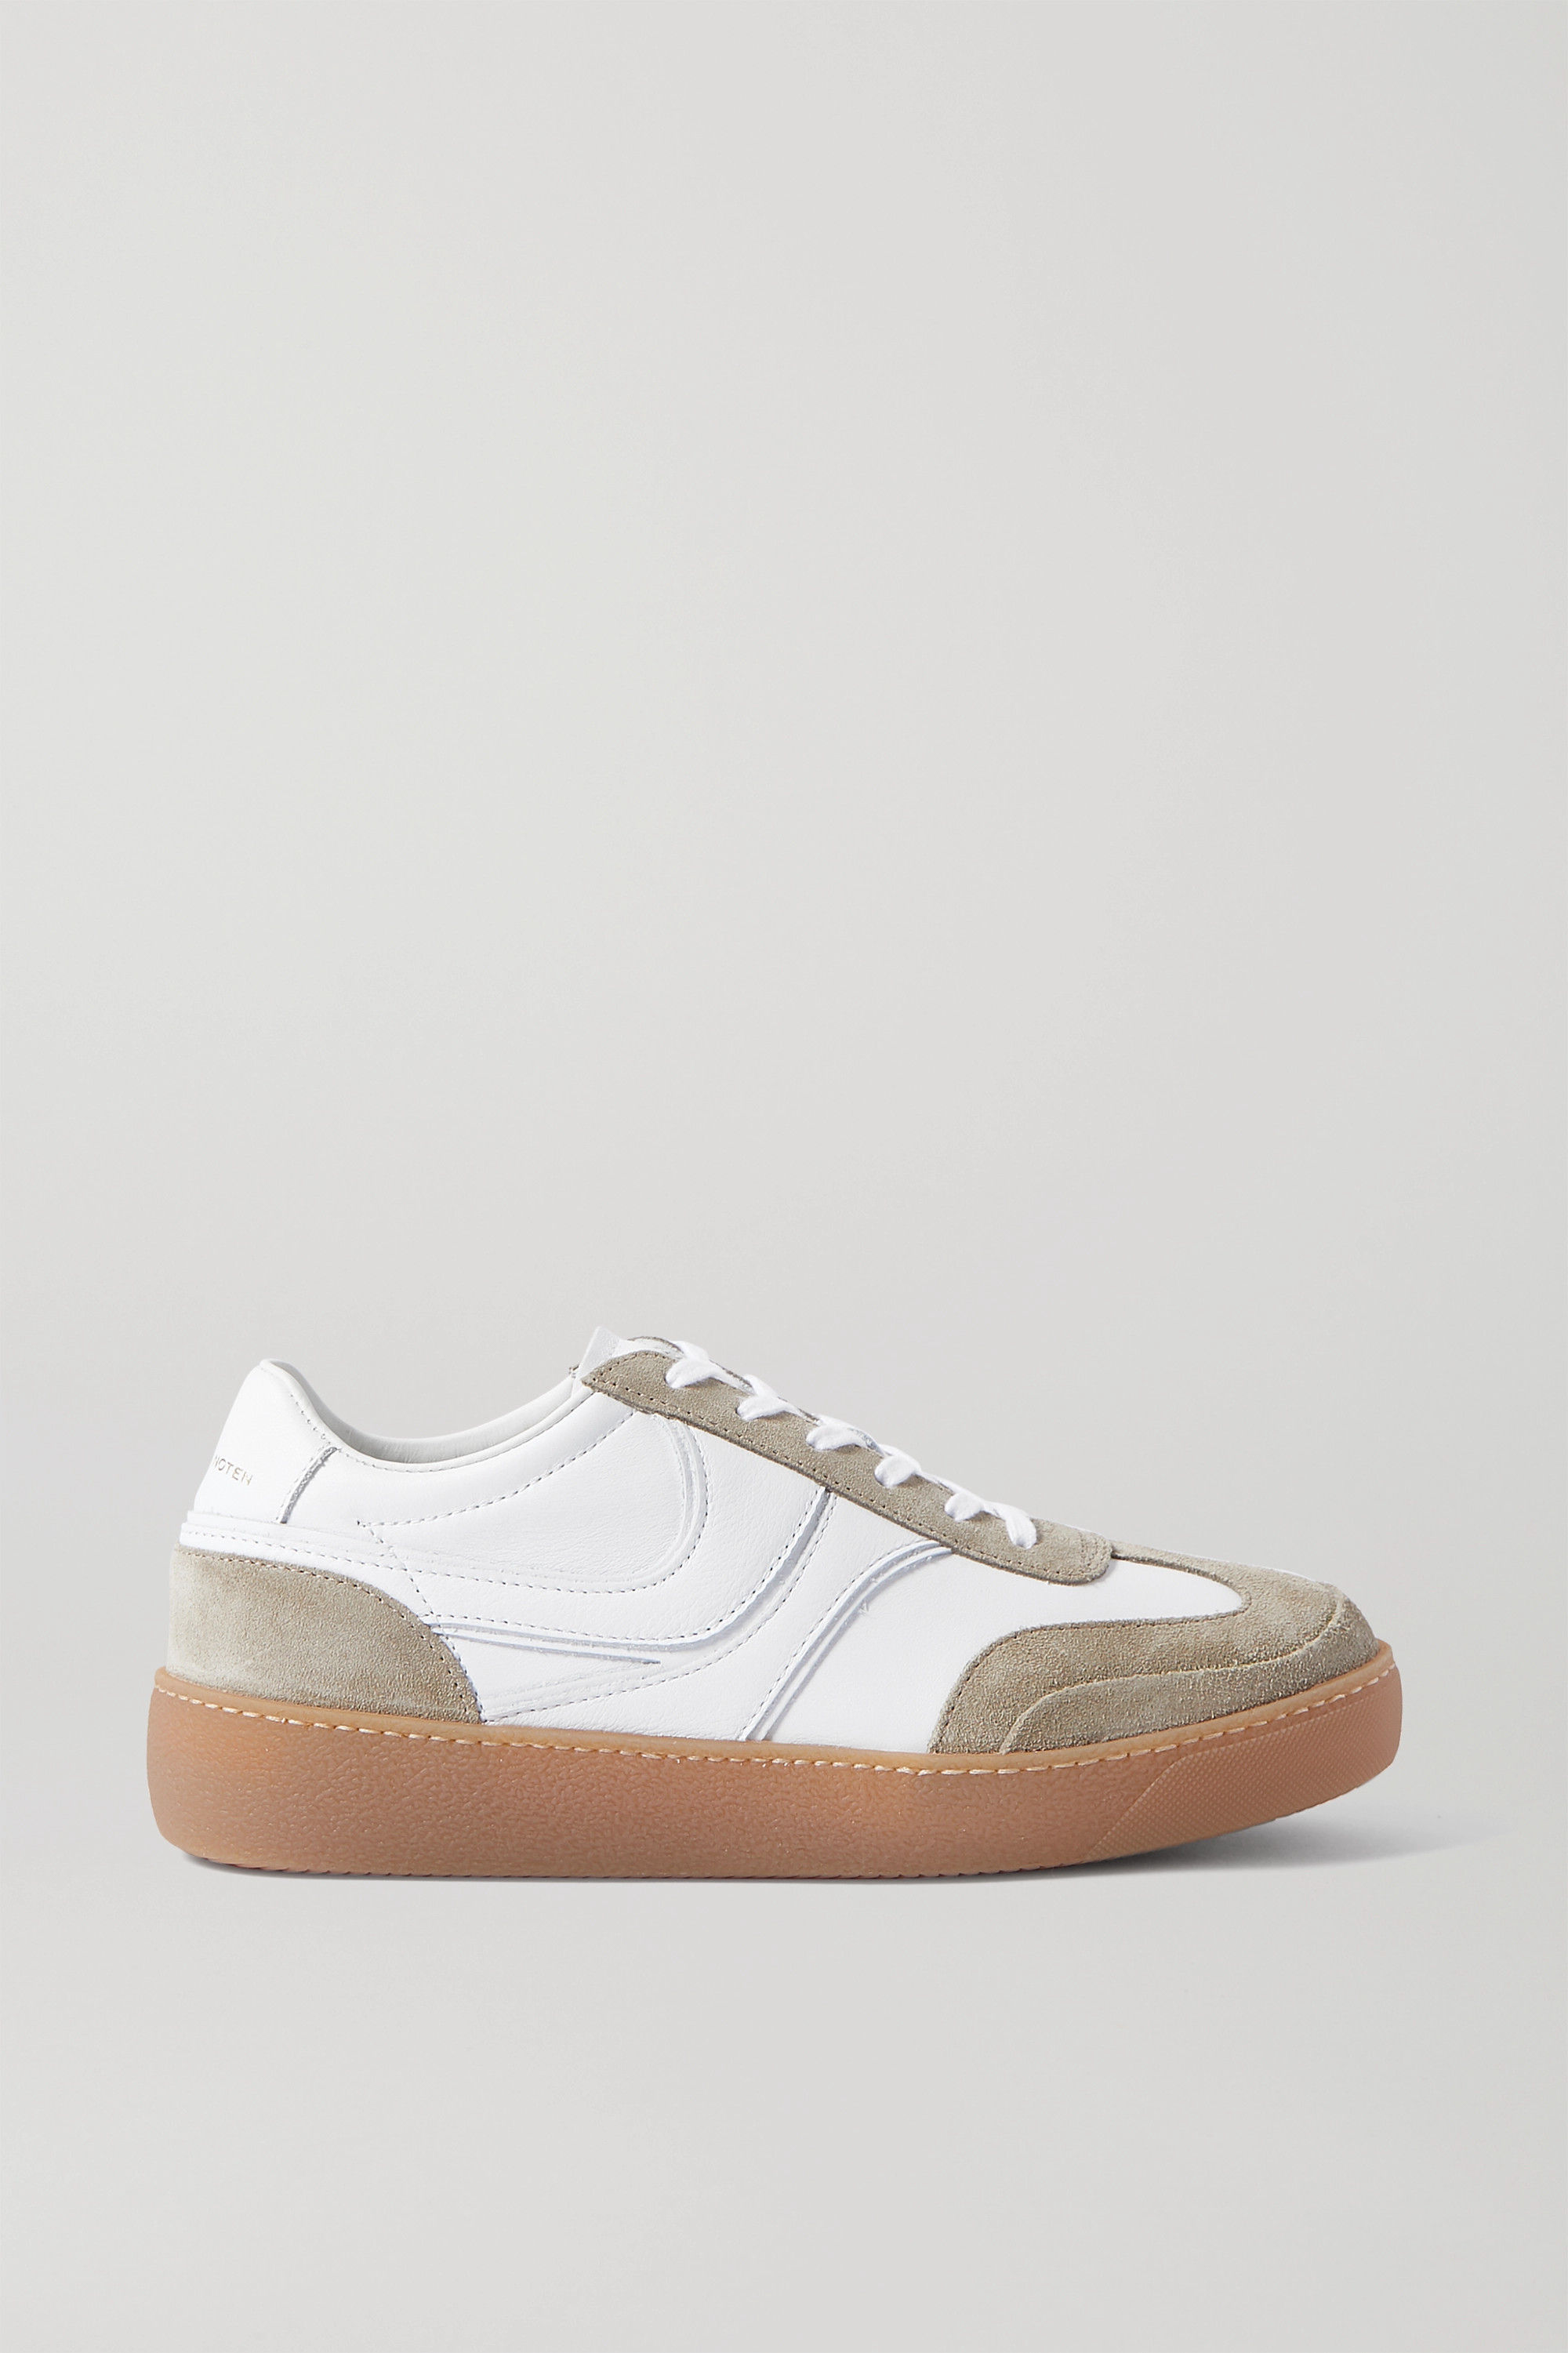 Dries Van Noten Leather and suede sneakers